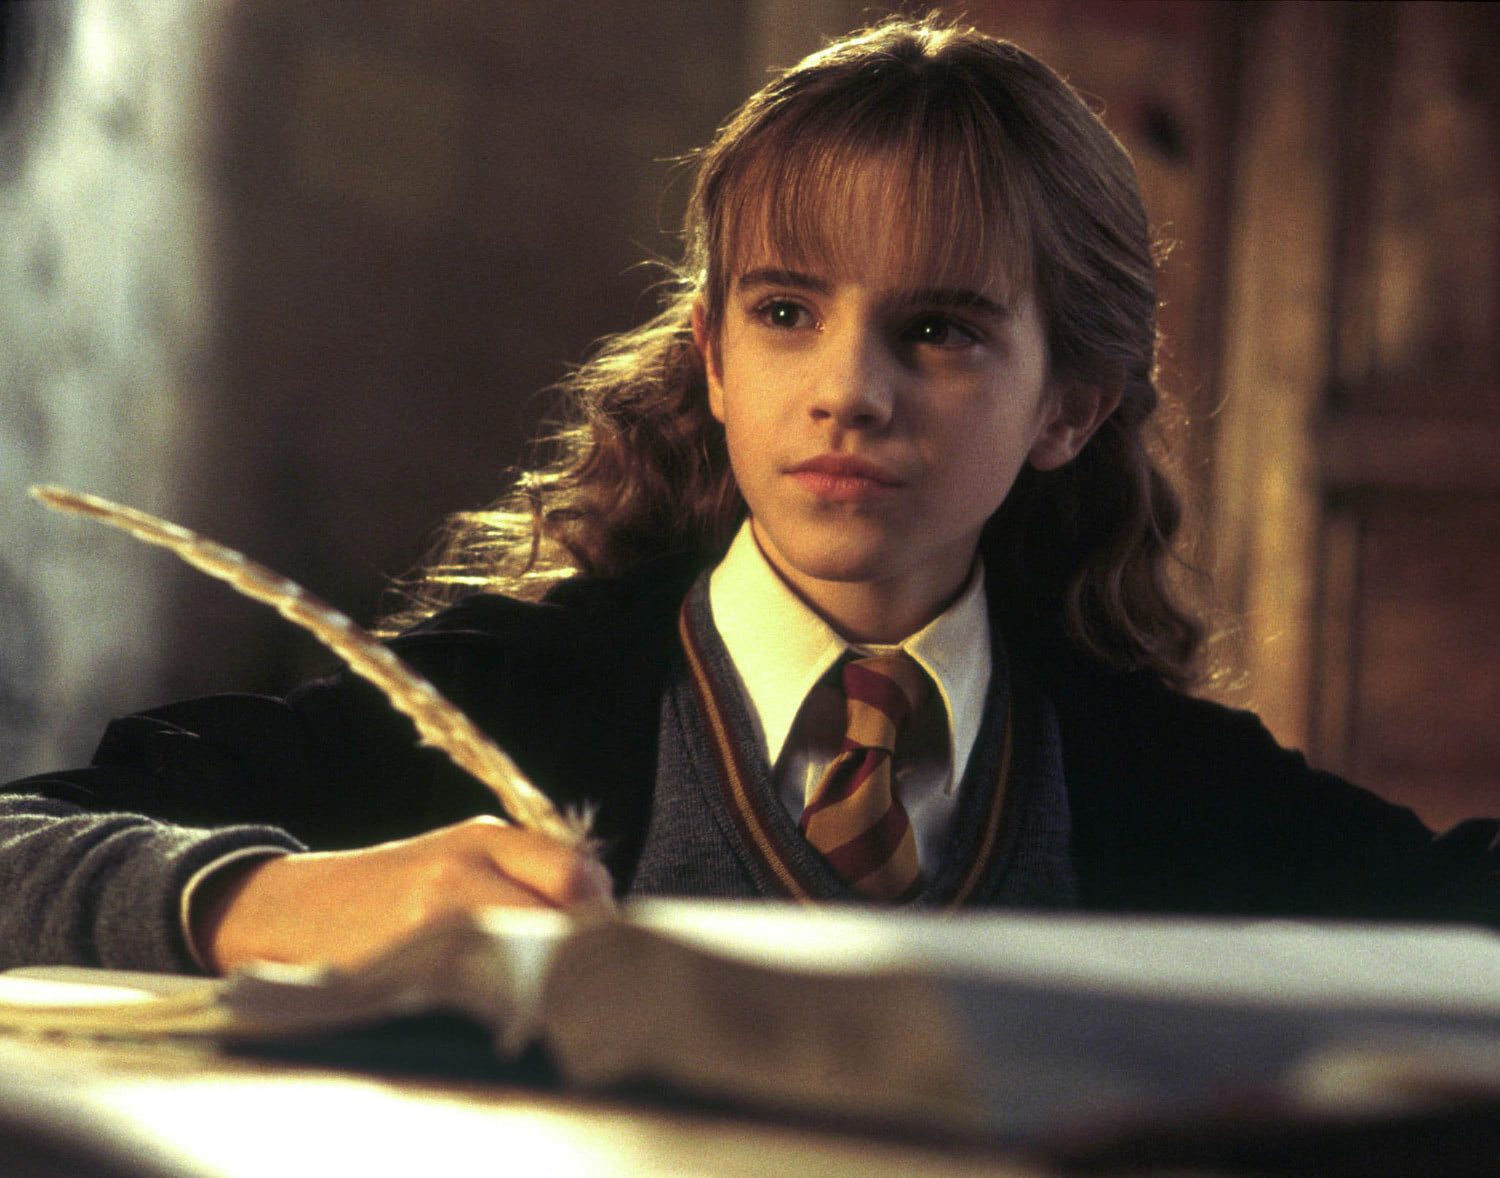 Hermione completing homework